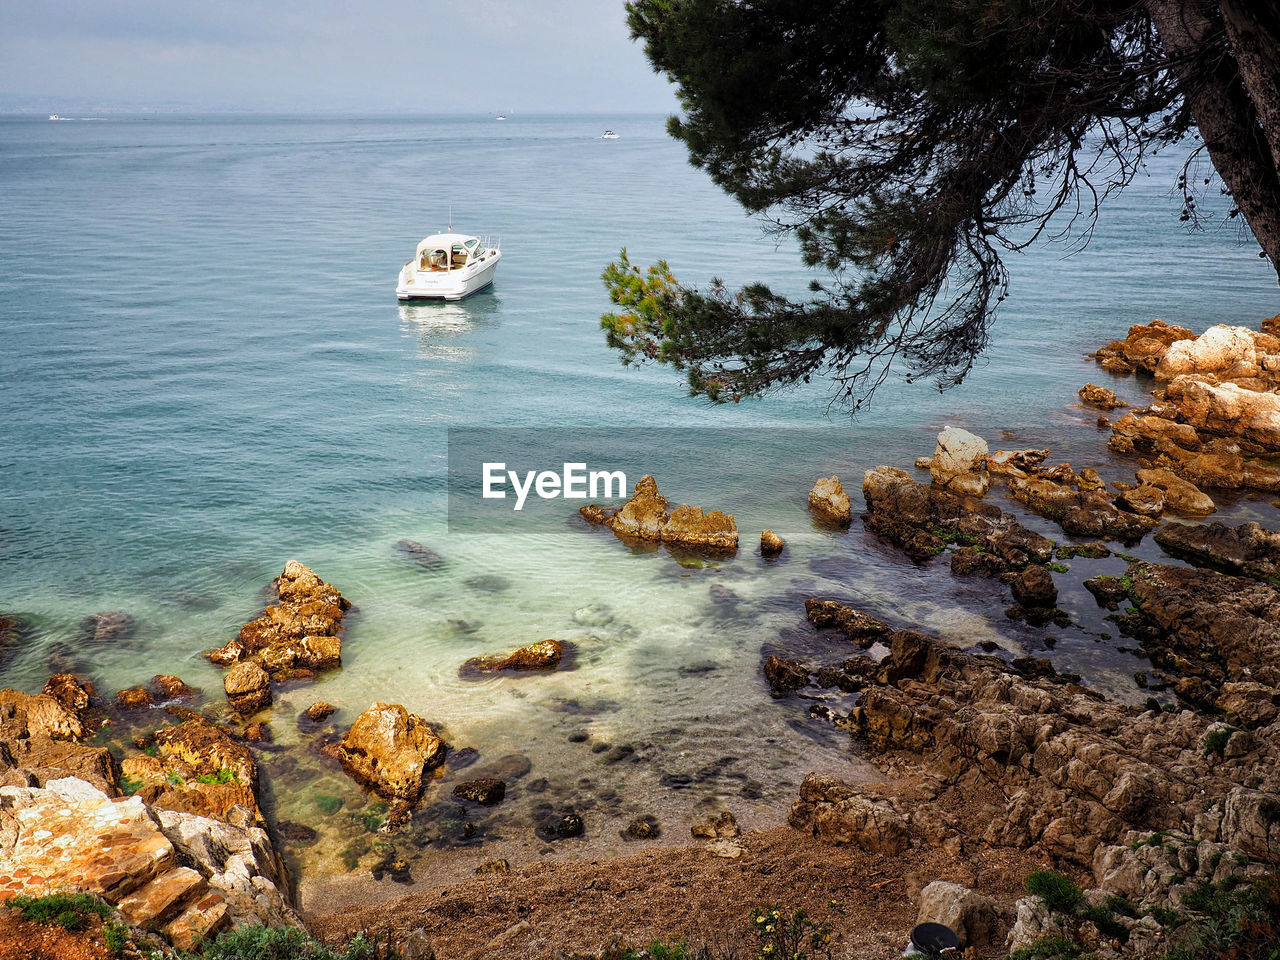 water, sea, rock, rock - object, solid, nature, no people, day, beauty in nature, beach, tranquility, land, scenics - nature, tranquil scene, tree, plant, non-urban scene, rock formation, outdoors